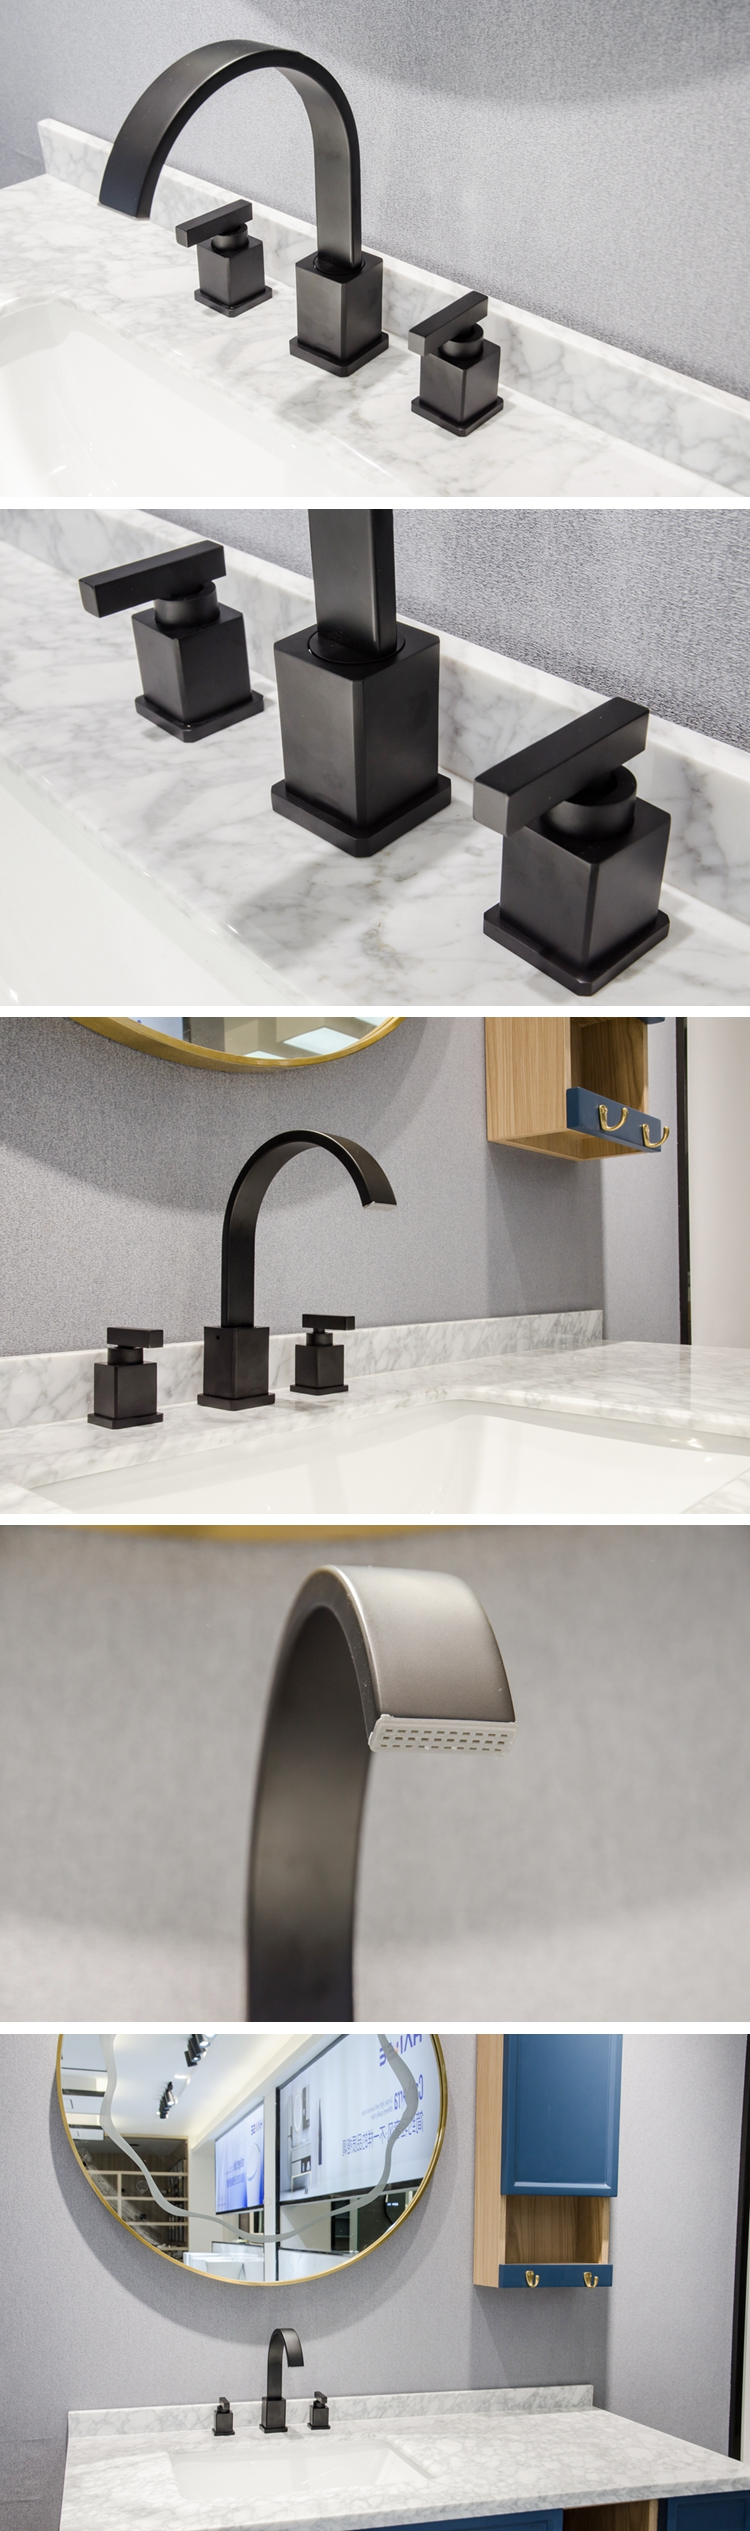 upc commercial hand sink 3-way faucet tap black bathroom